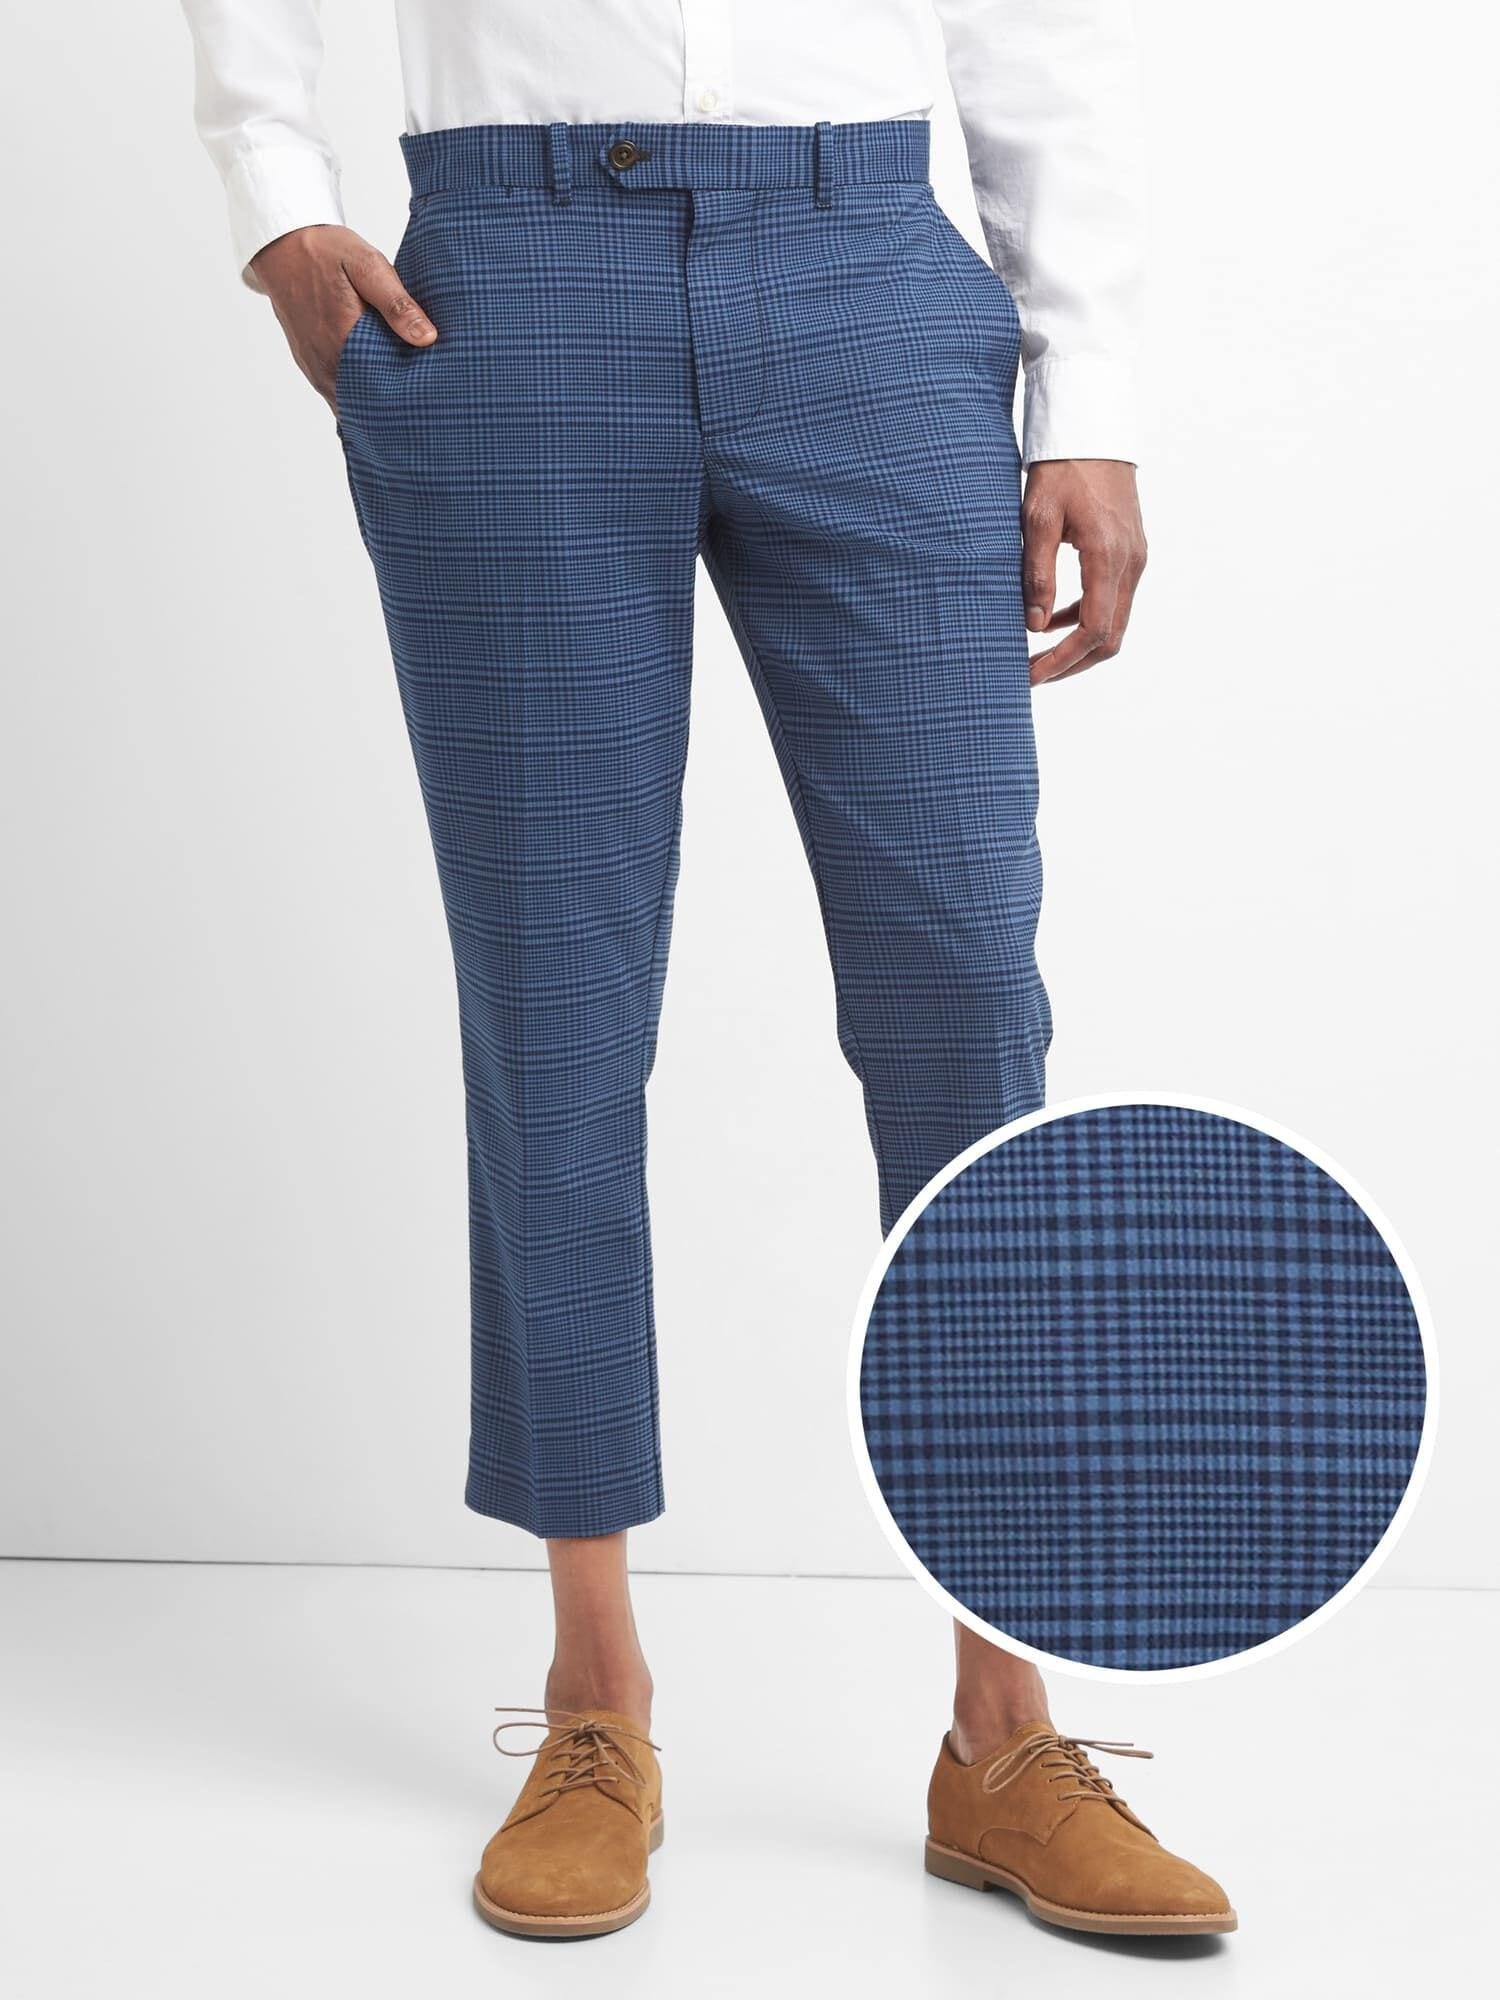 Wader Ankle Pants in Slim Fit with GapFlex